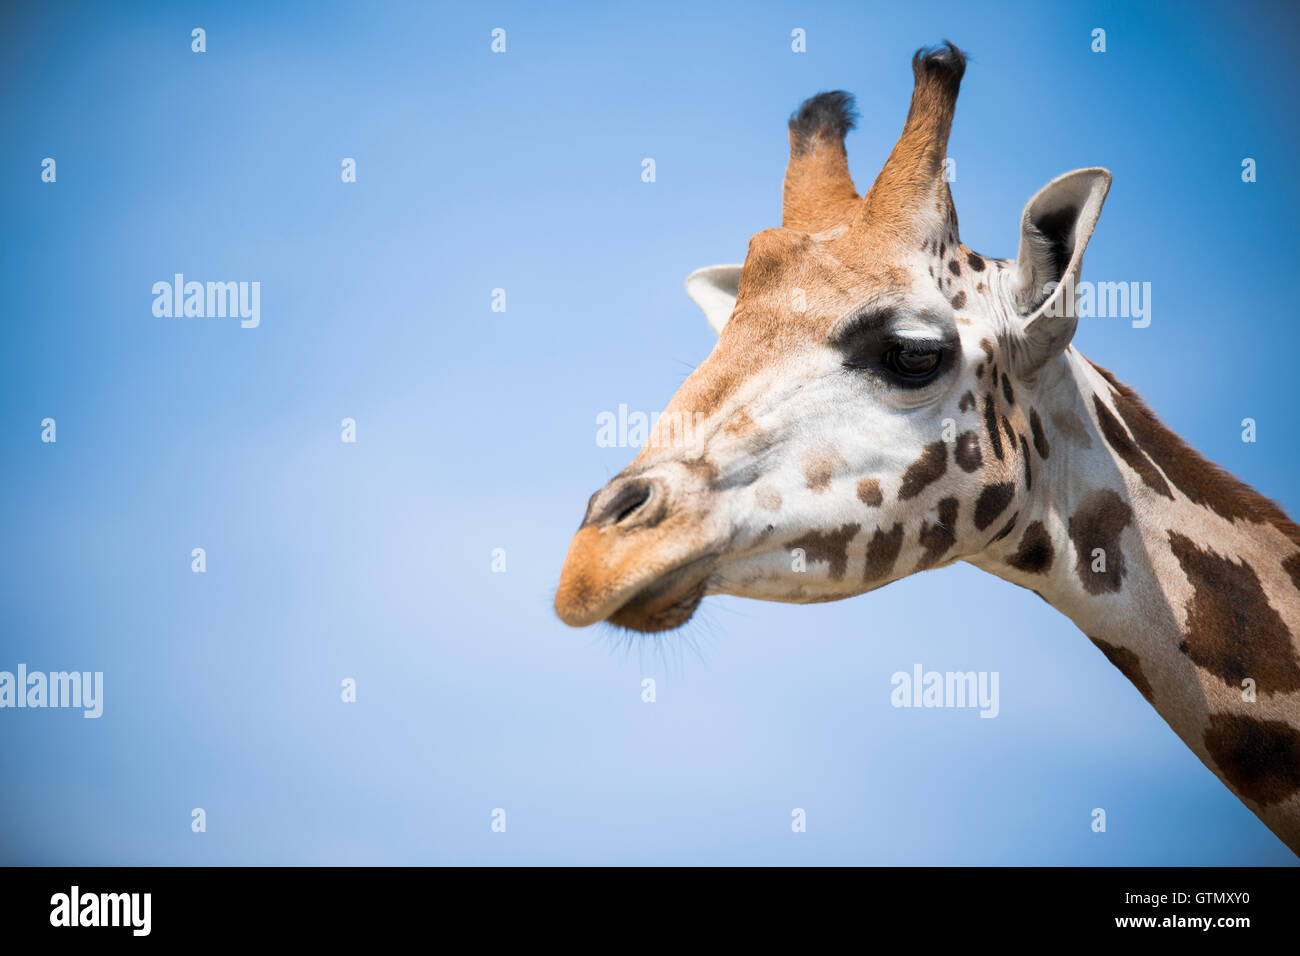 closeup of a giraffe on a blue sky - Stock Image